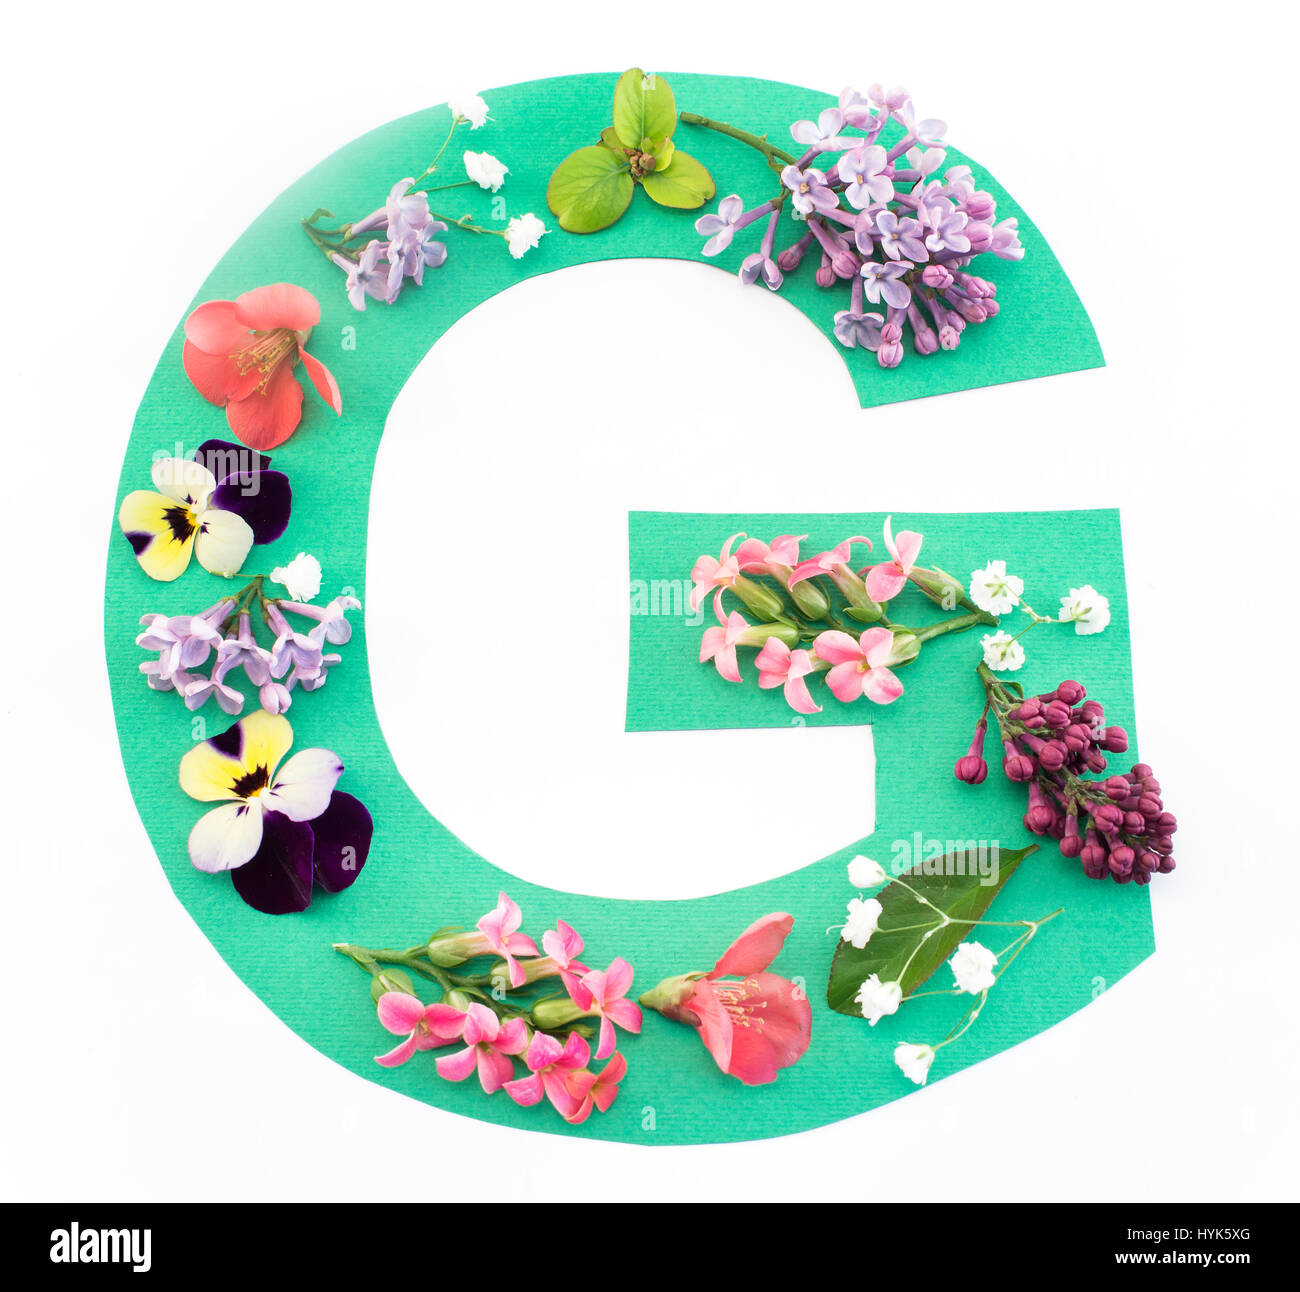 Letter G Flowers Stock Photos Letter G Flowers Stock Images Alamy